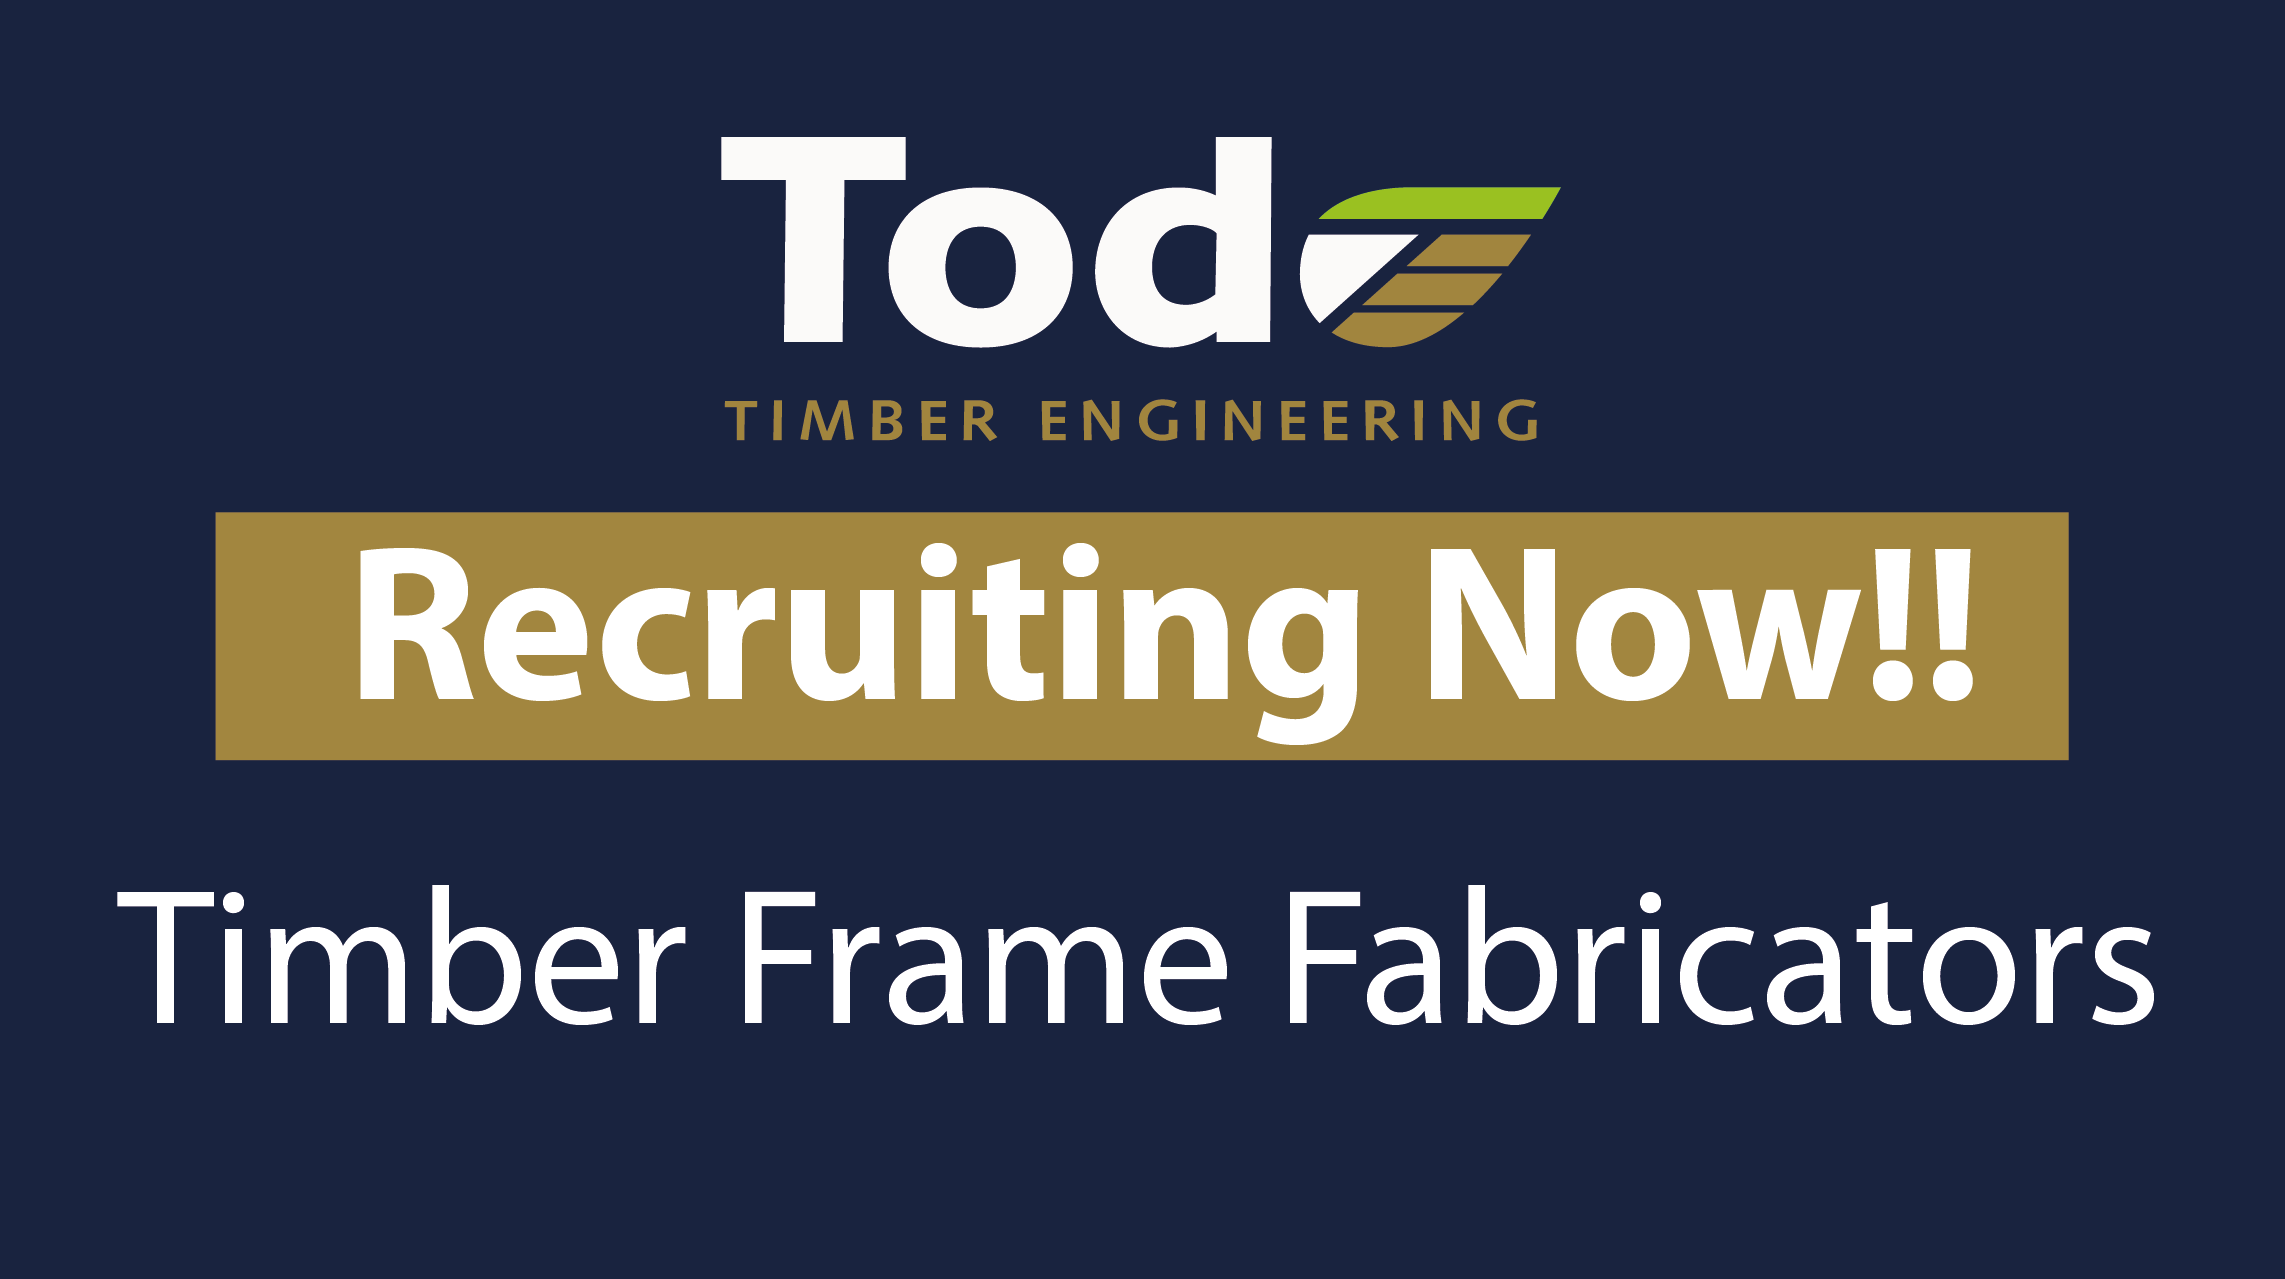 Job Vacancy: Timber Frame Fabricators